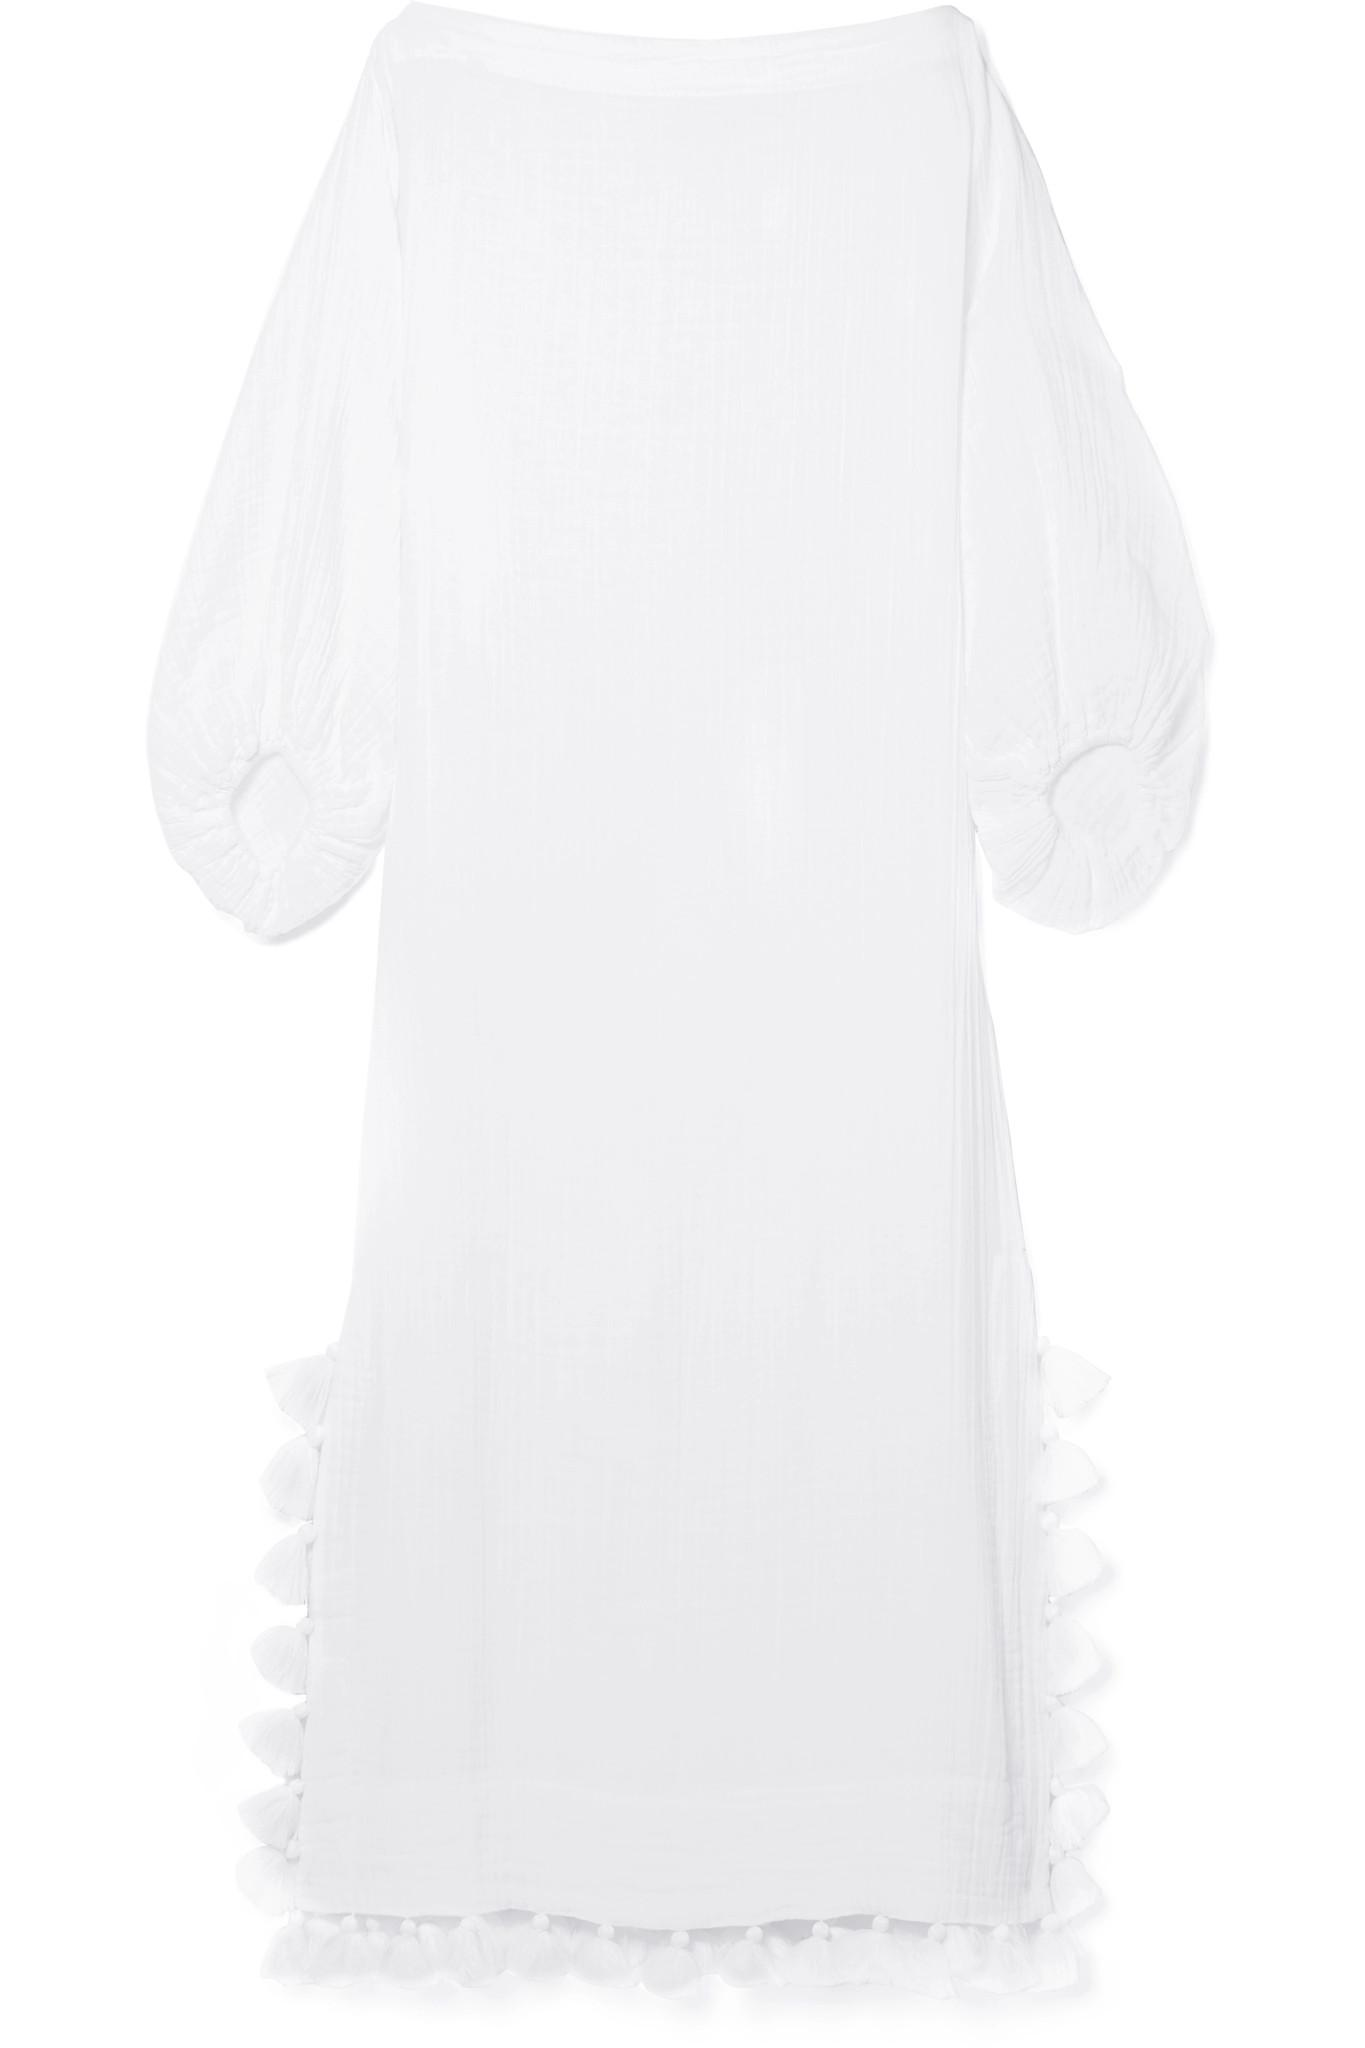 Delilah Tasseled Crinkled-voile Maxi Dress - White Rhode Resort Free Shipping Store Cheap Shop Offer Outlet Cheap Quality Outlet Very Cheap Shopping Online tdyxT